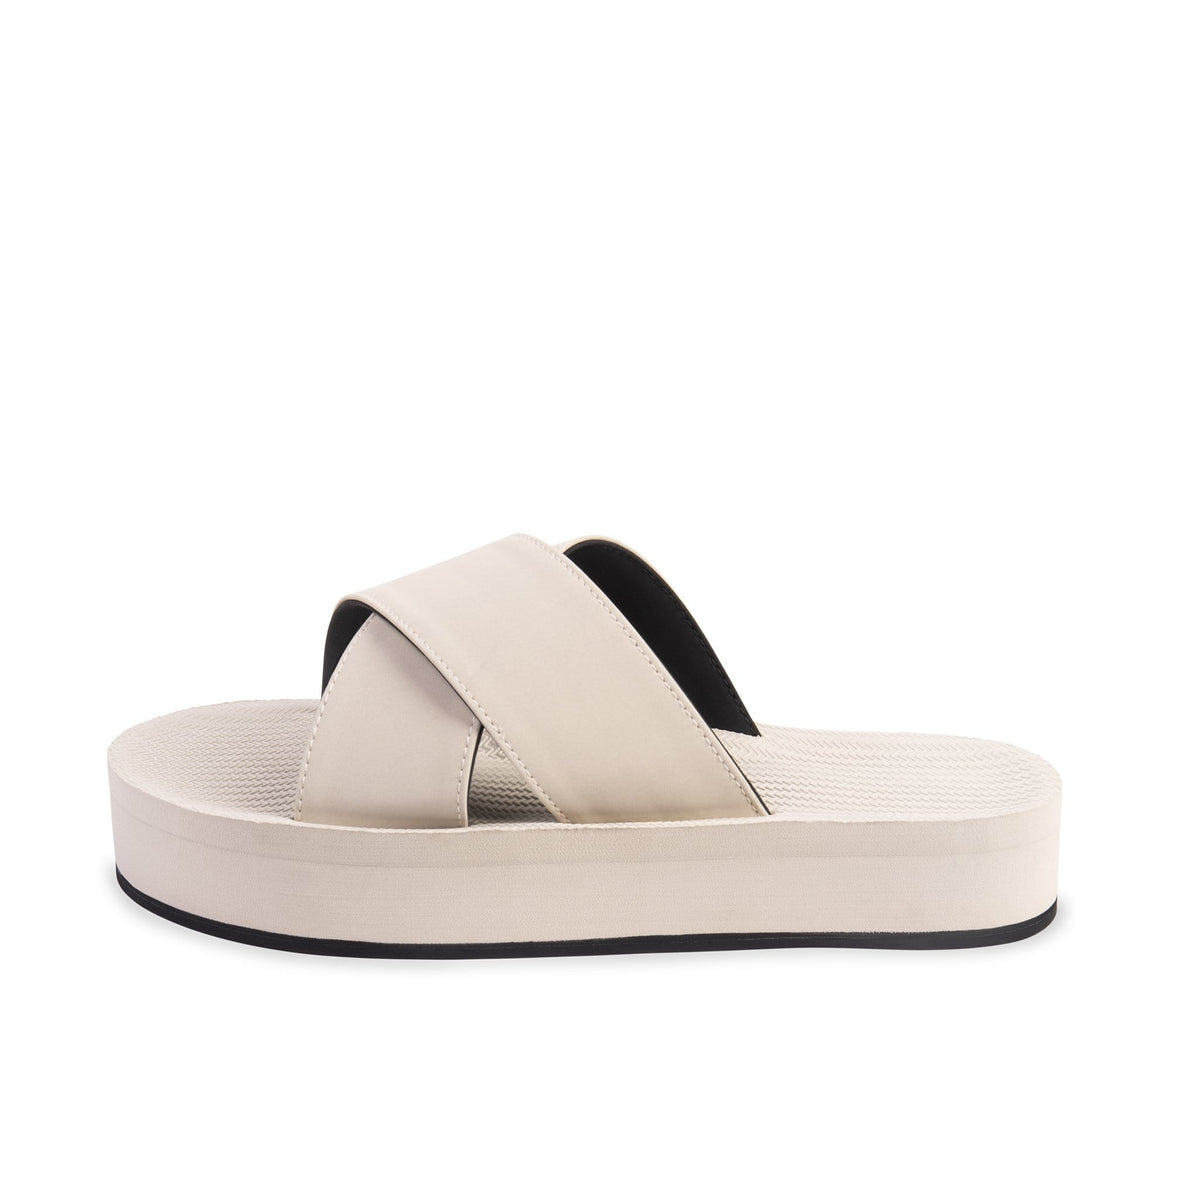 Women's Cross Platform Sea Salt